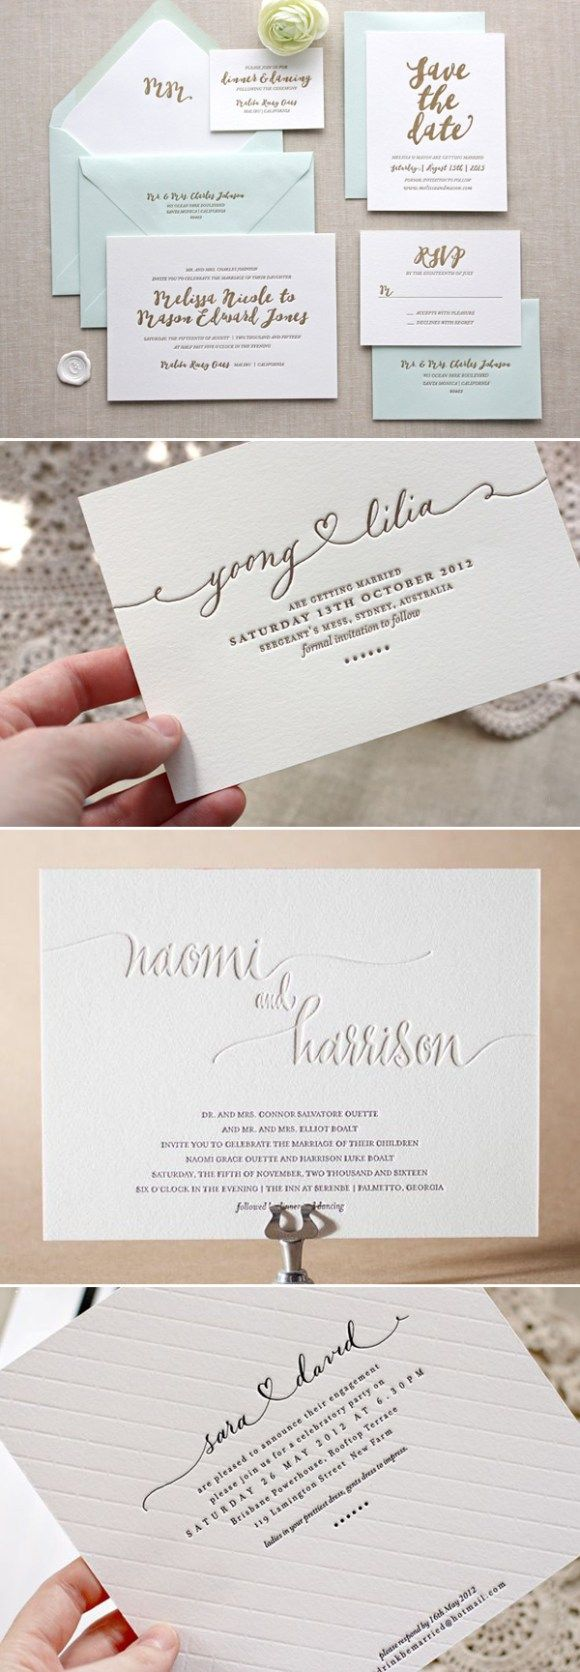 fun modern wedding invitations%0A Your wedding invitation is one of the very first parts of the wedding that  guests actually get to see  and it u    s important to show your personal style